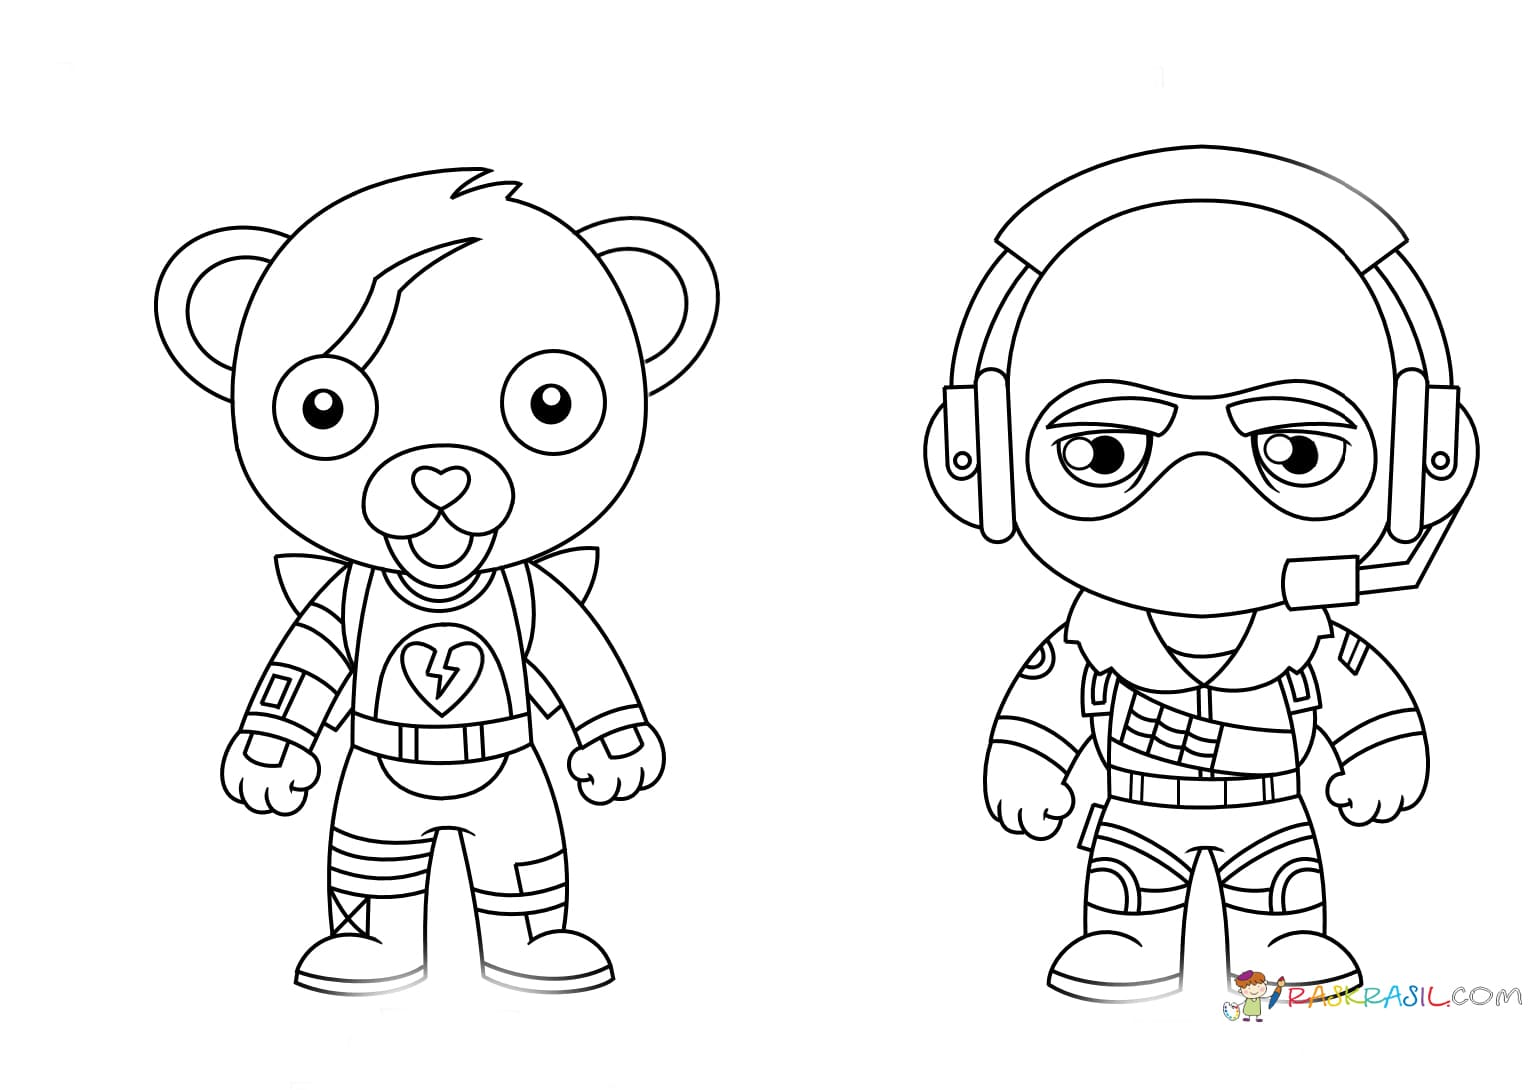 Coloring pages for boys 10 years old. Print for free, 100 images